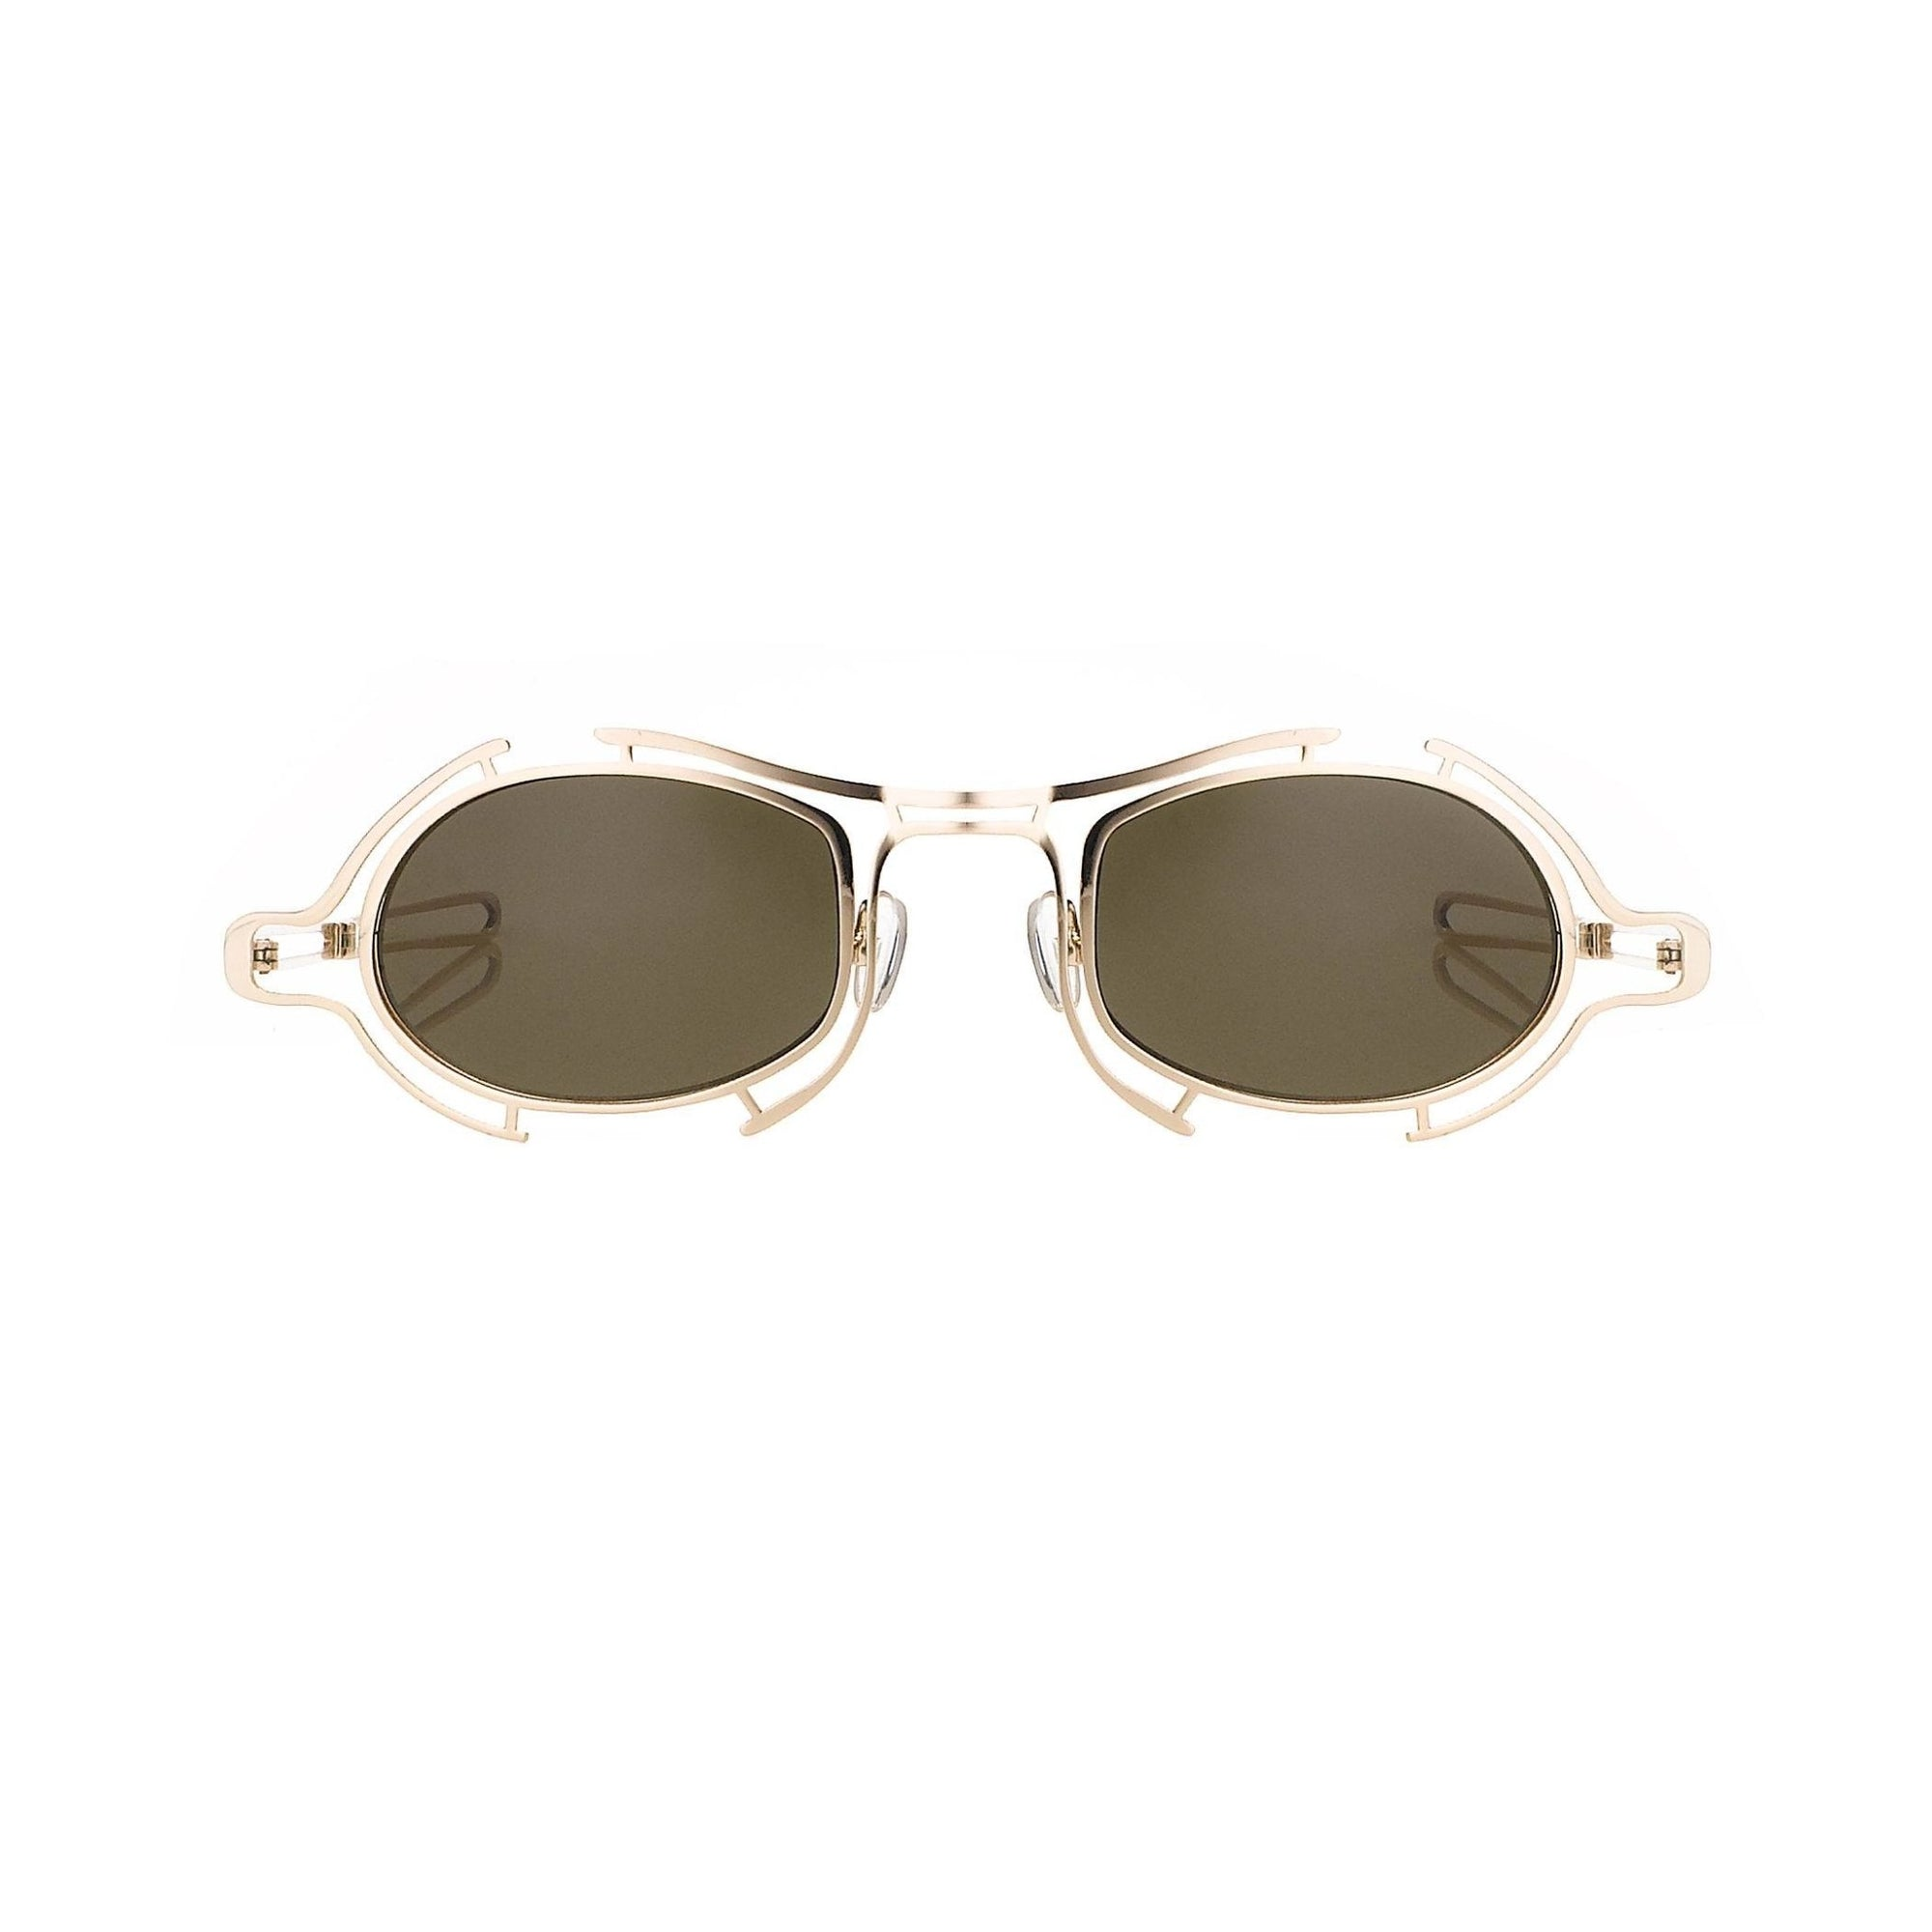 Raf Simons Sunglasses Special Shape Gold and Brown Lenses Category 3 - 9RAF13C3SHINYGOLD - Watches & Crystals